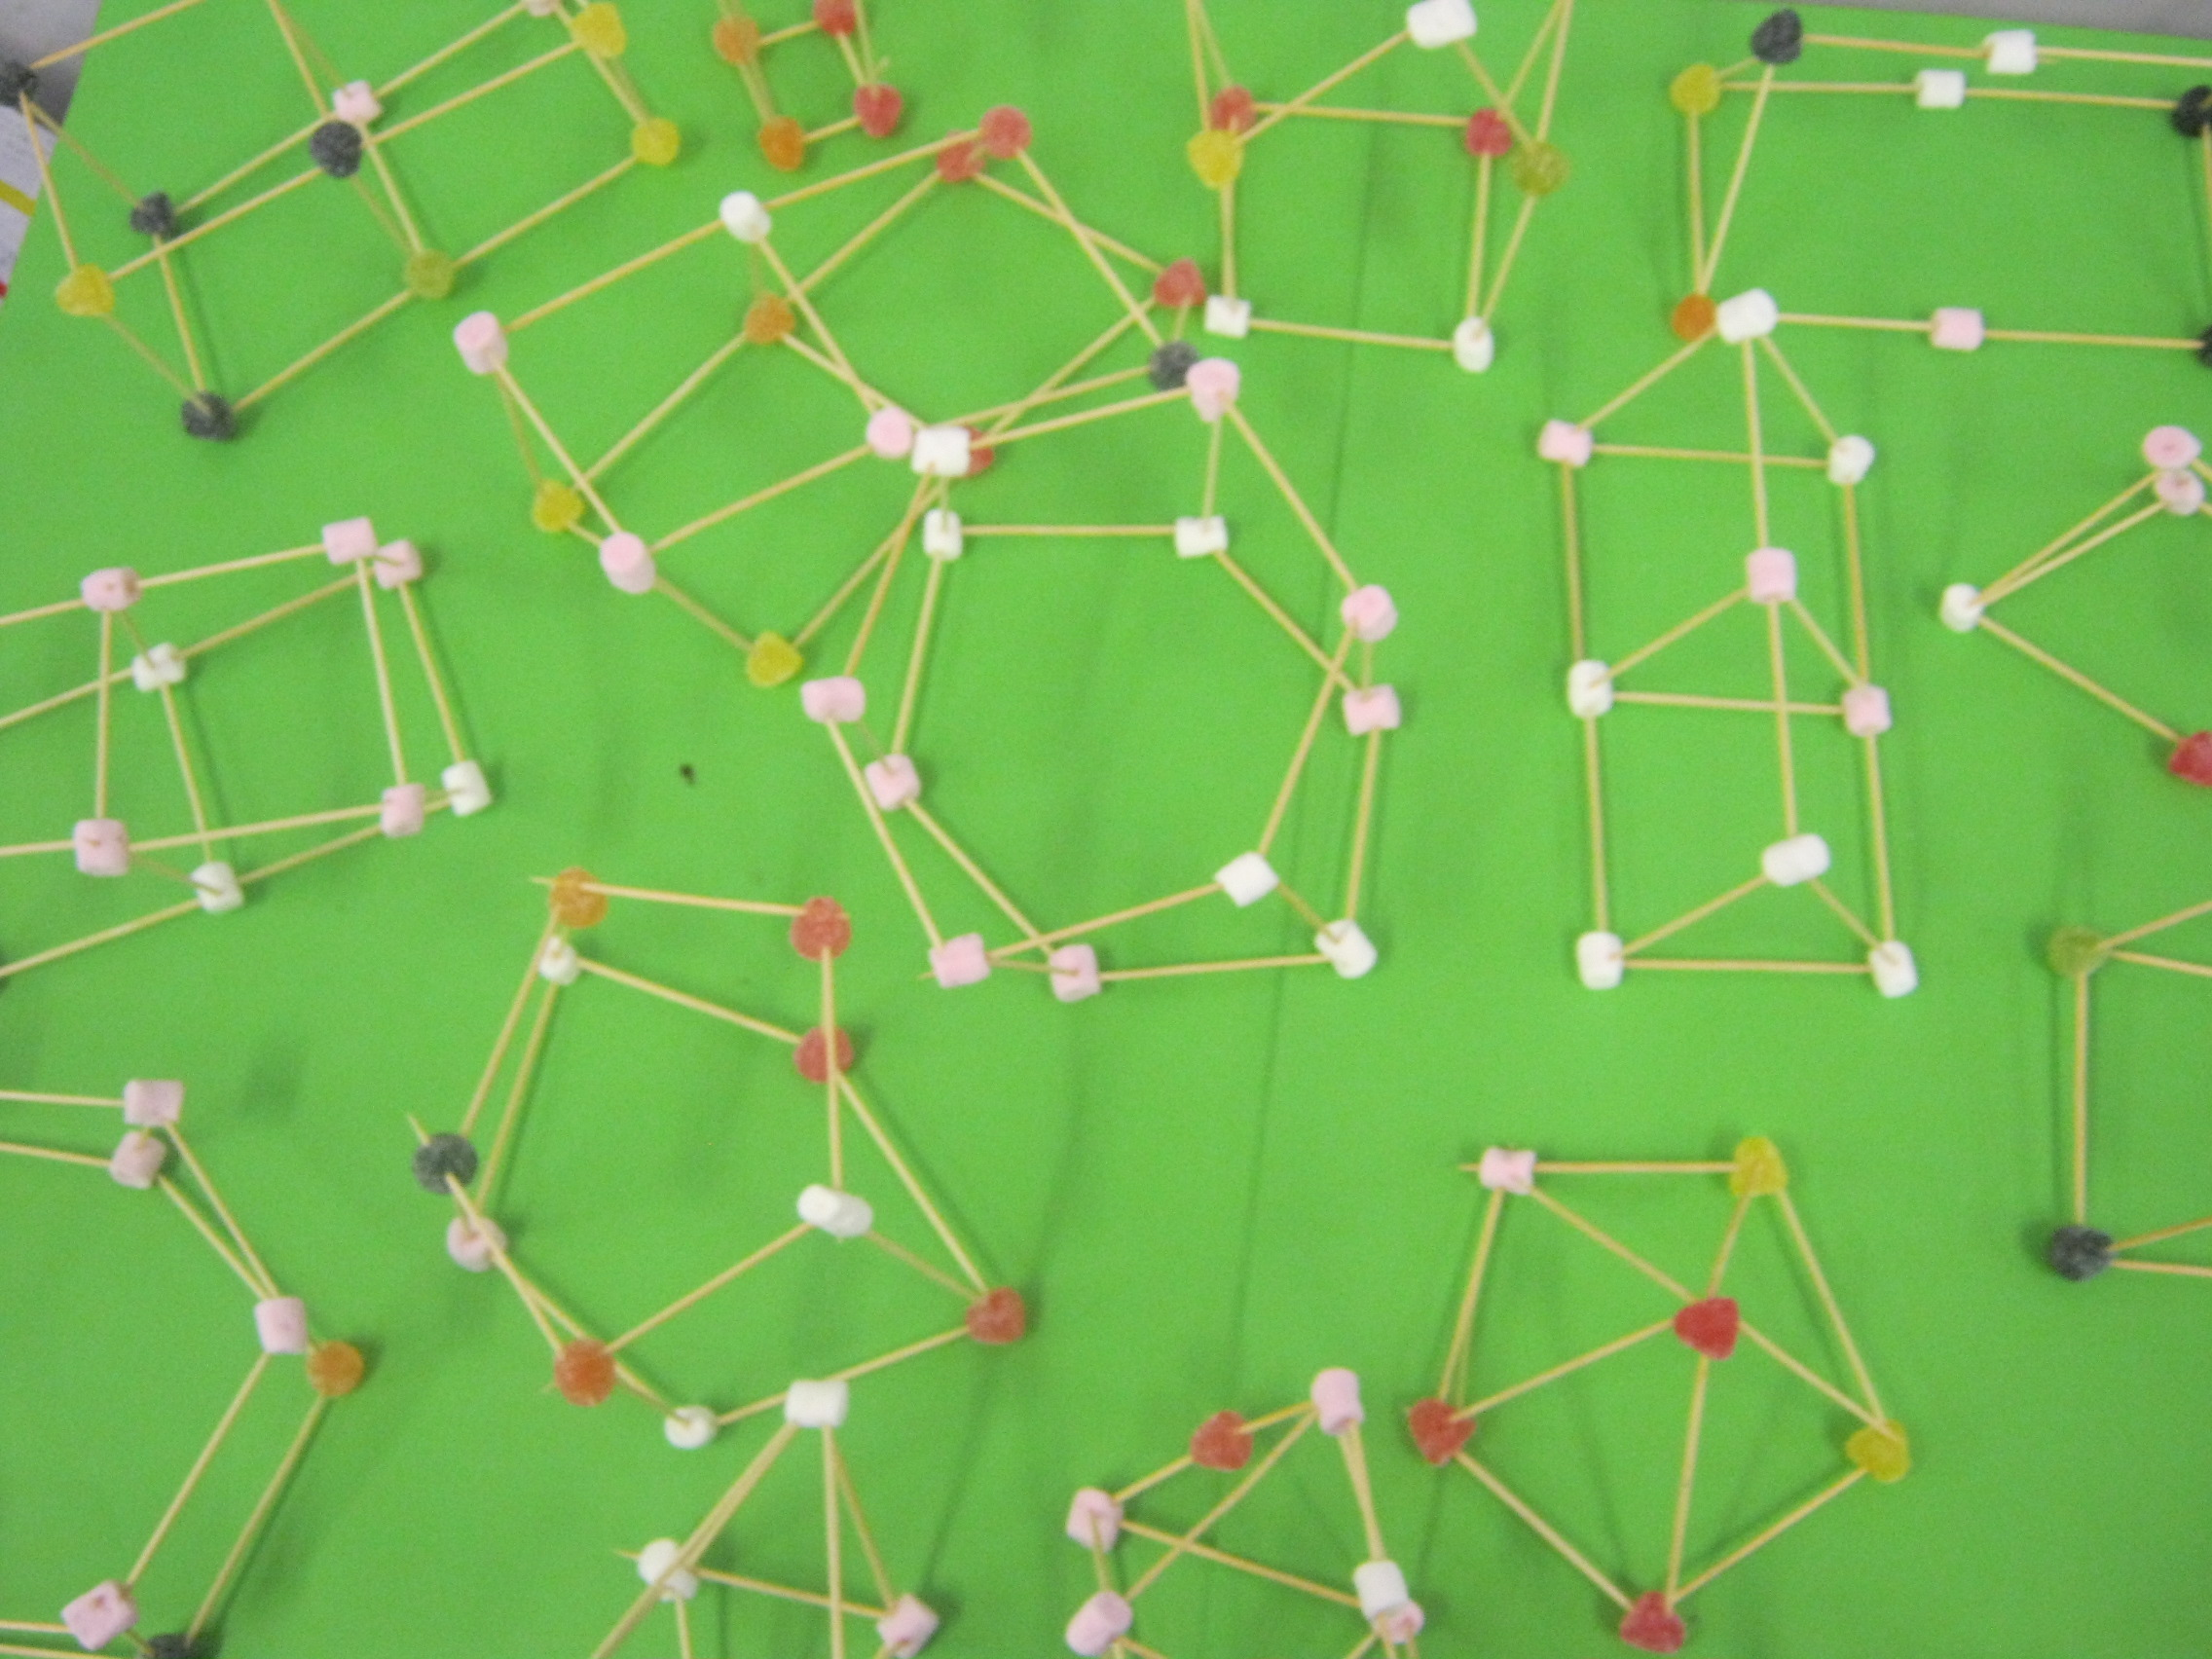 3d Shapes By 5th Amp 6th Class Holmpatrick National School